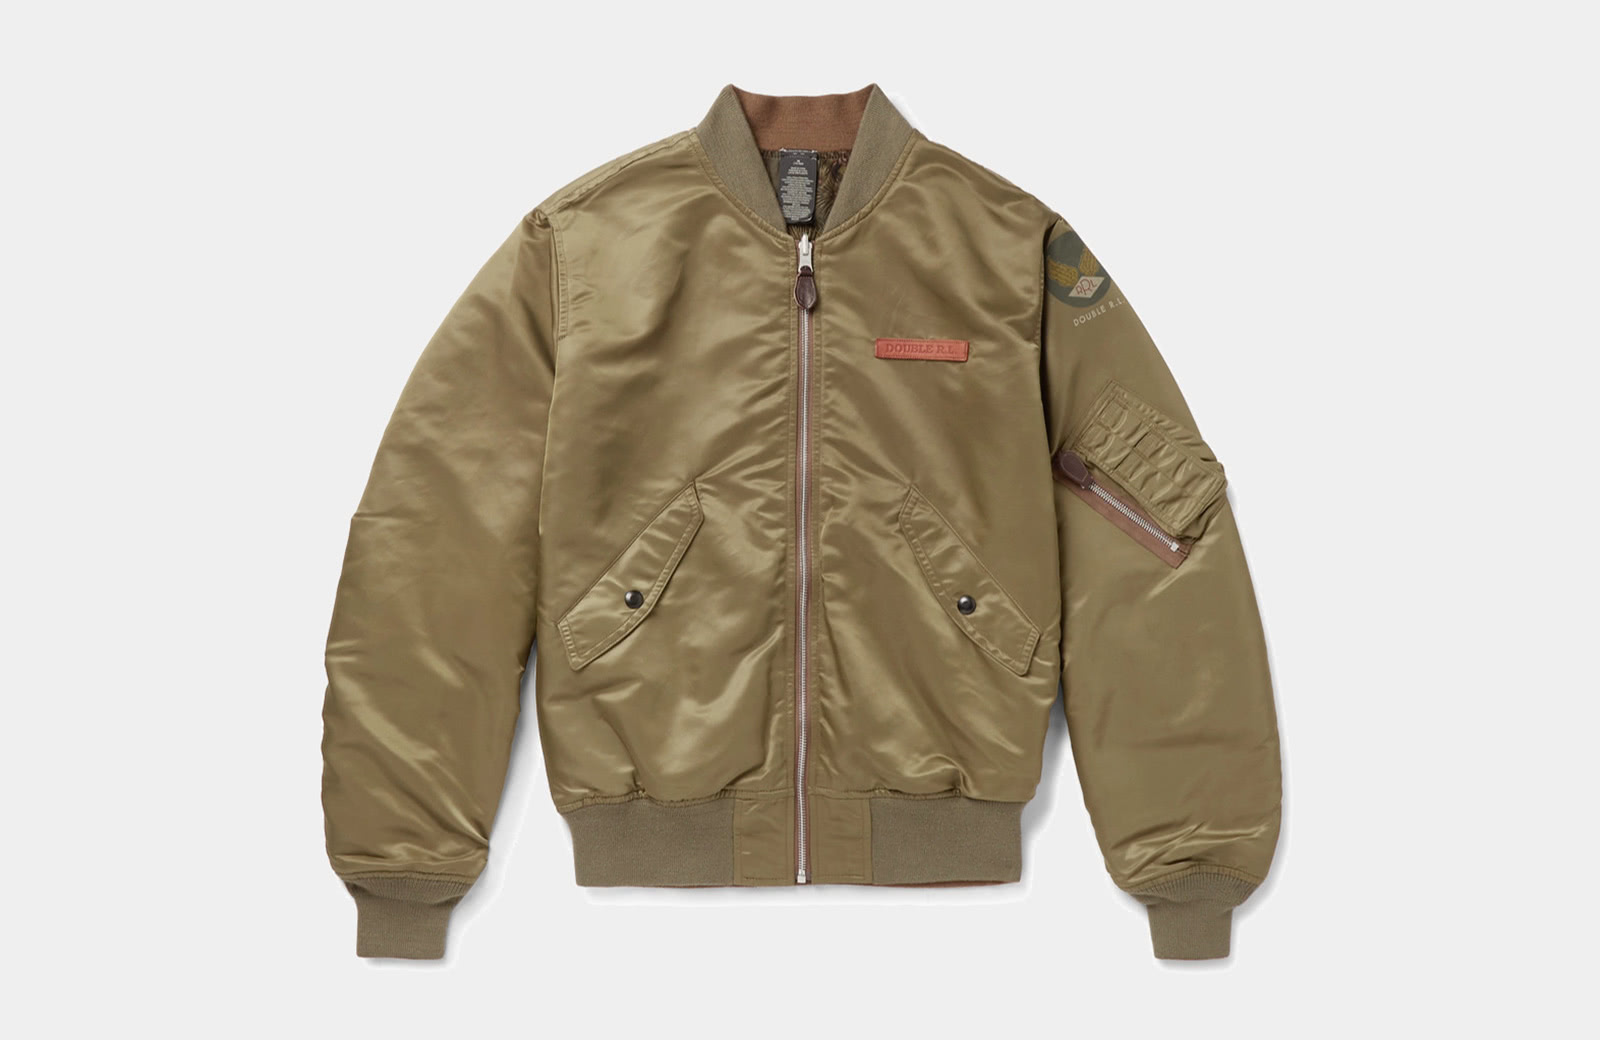 best olive bomber jacket men Ralph Lauren luxury style - Luxe Digital